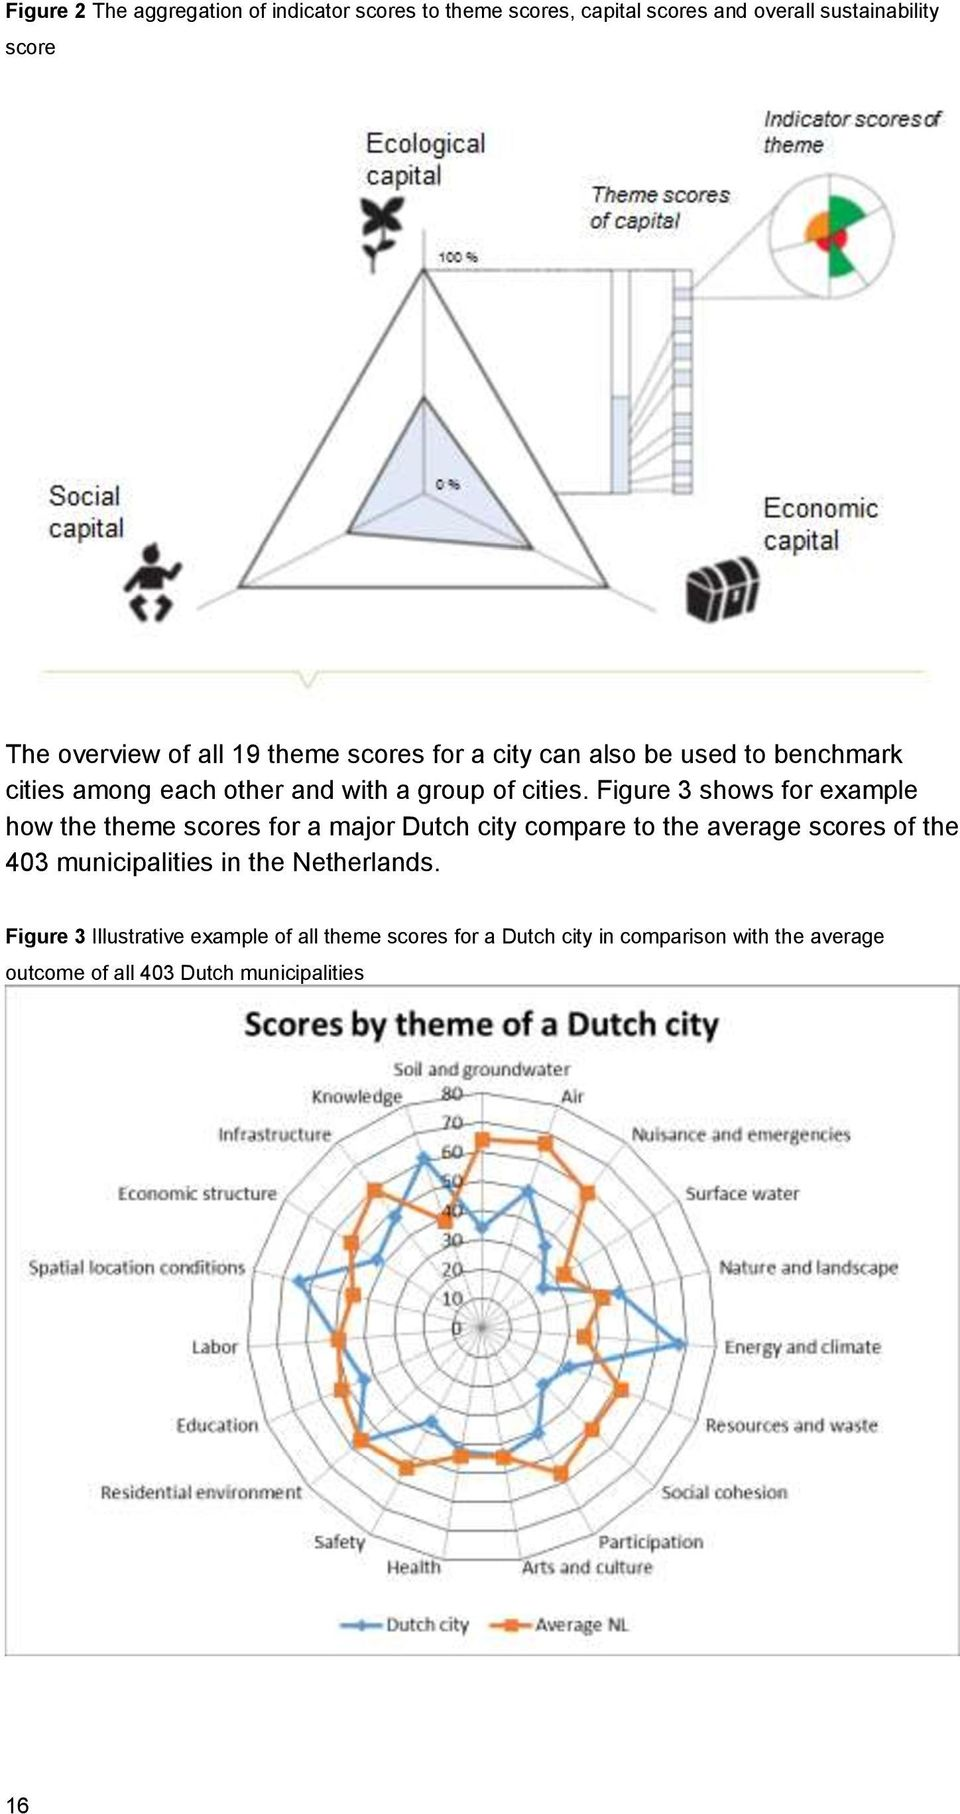 Figure 3 shows for example how the theme scores for a major Dutch city compare to the average scores of the 403 municipalities in